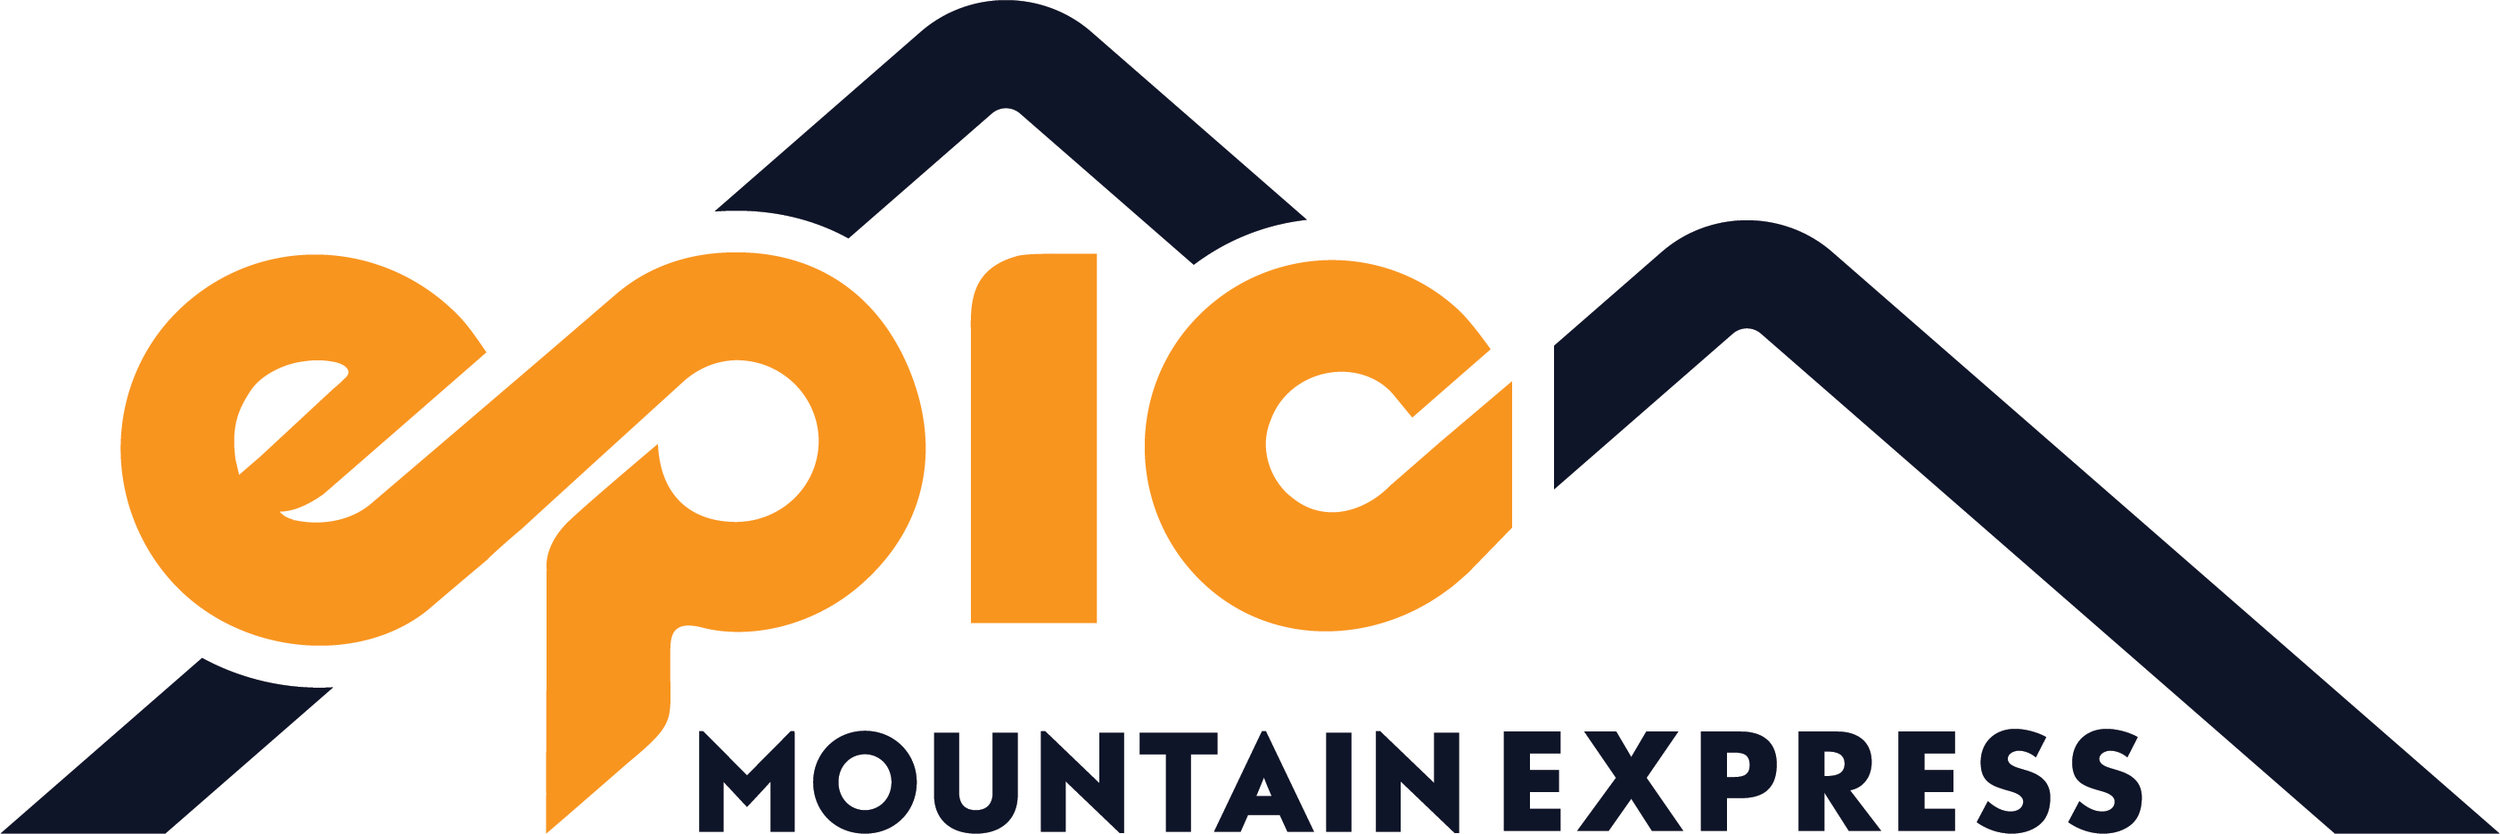 EPIC Mountain Express Logo.jpg